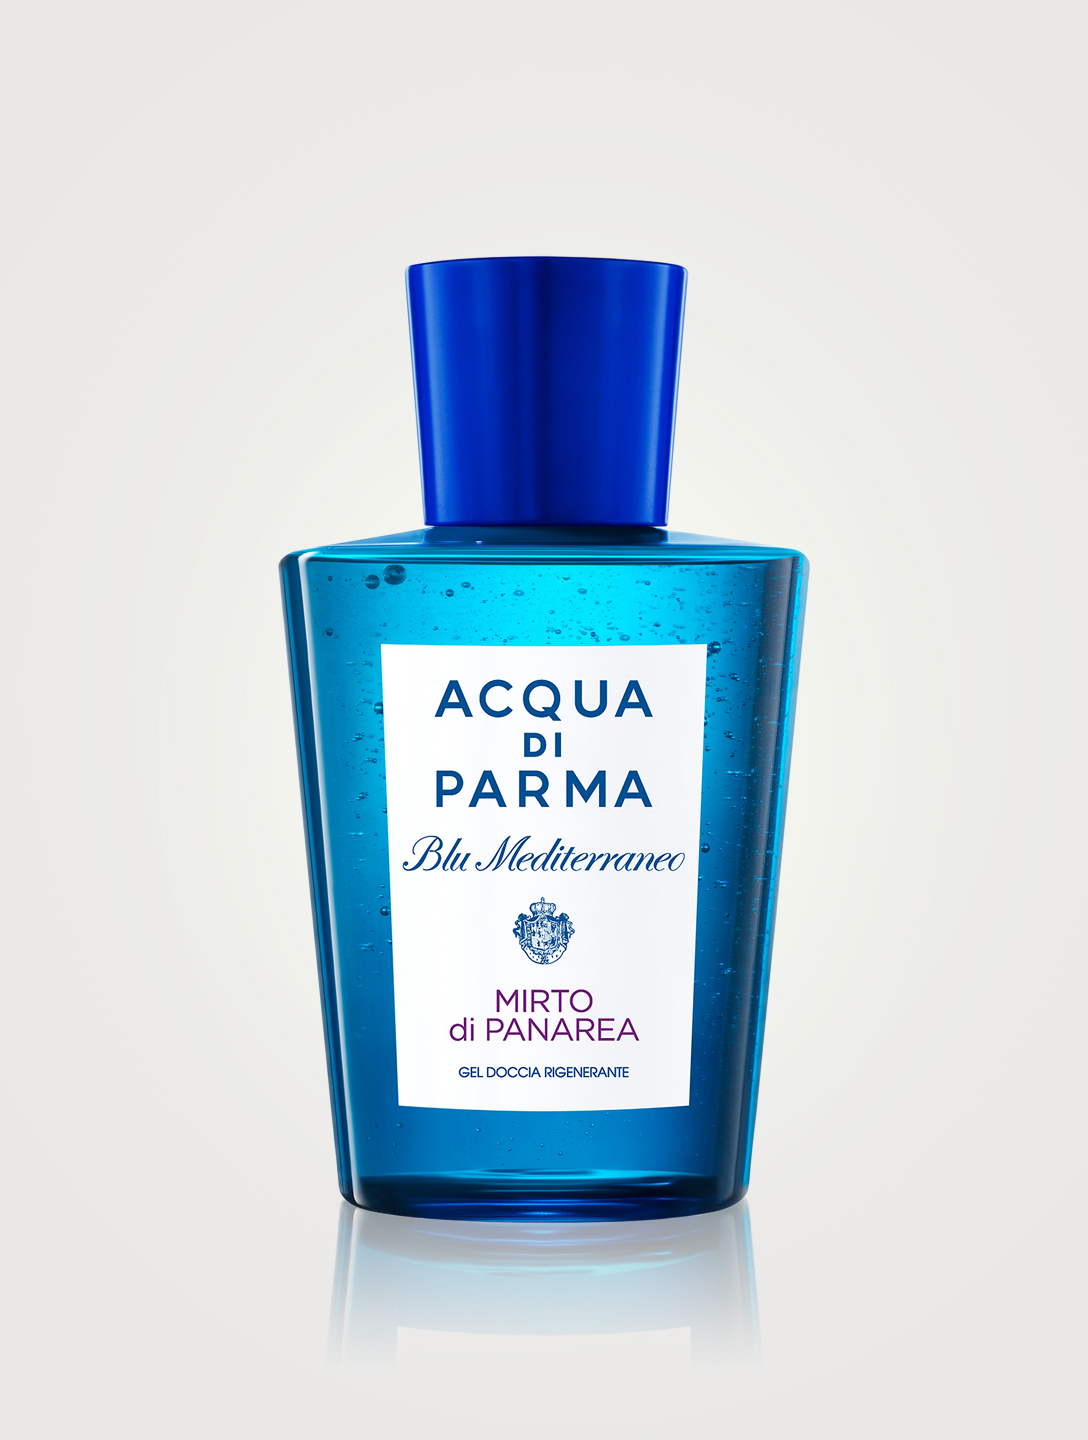 ACQUA DI PARMA Blu Mediterraneo Mirto di Panarea Shower Gel Beauty